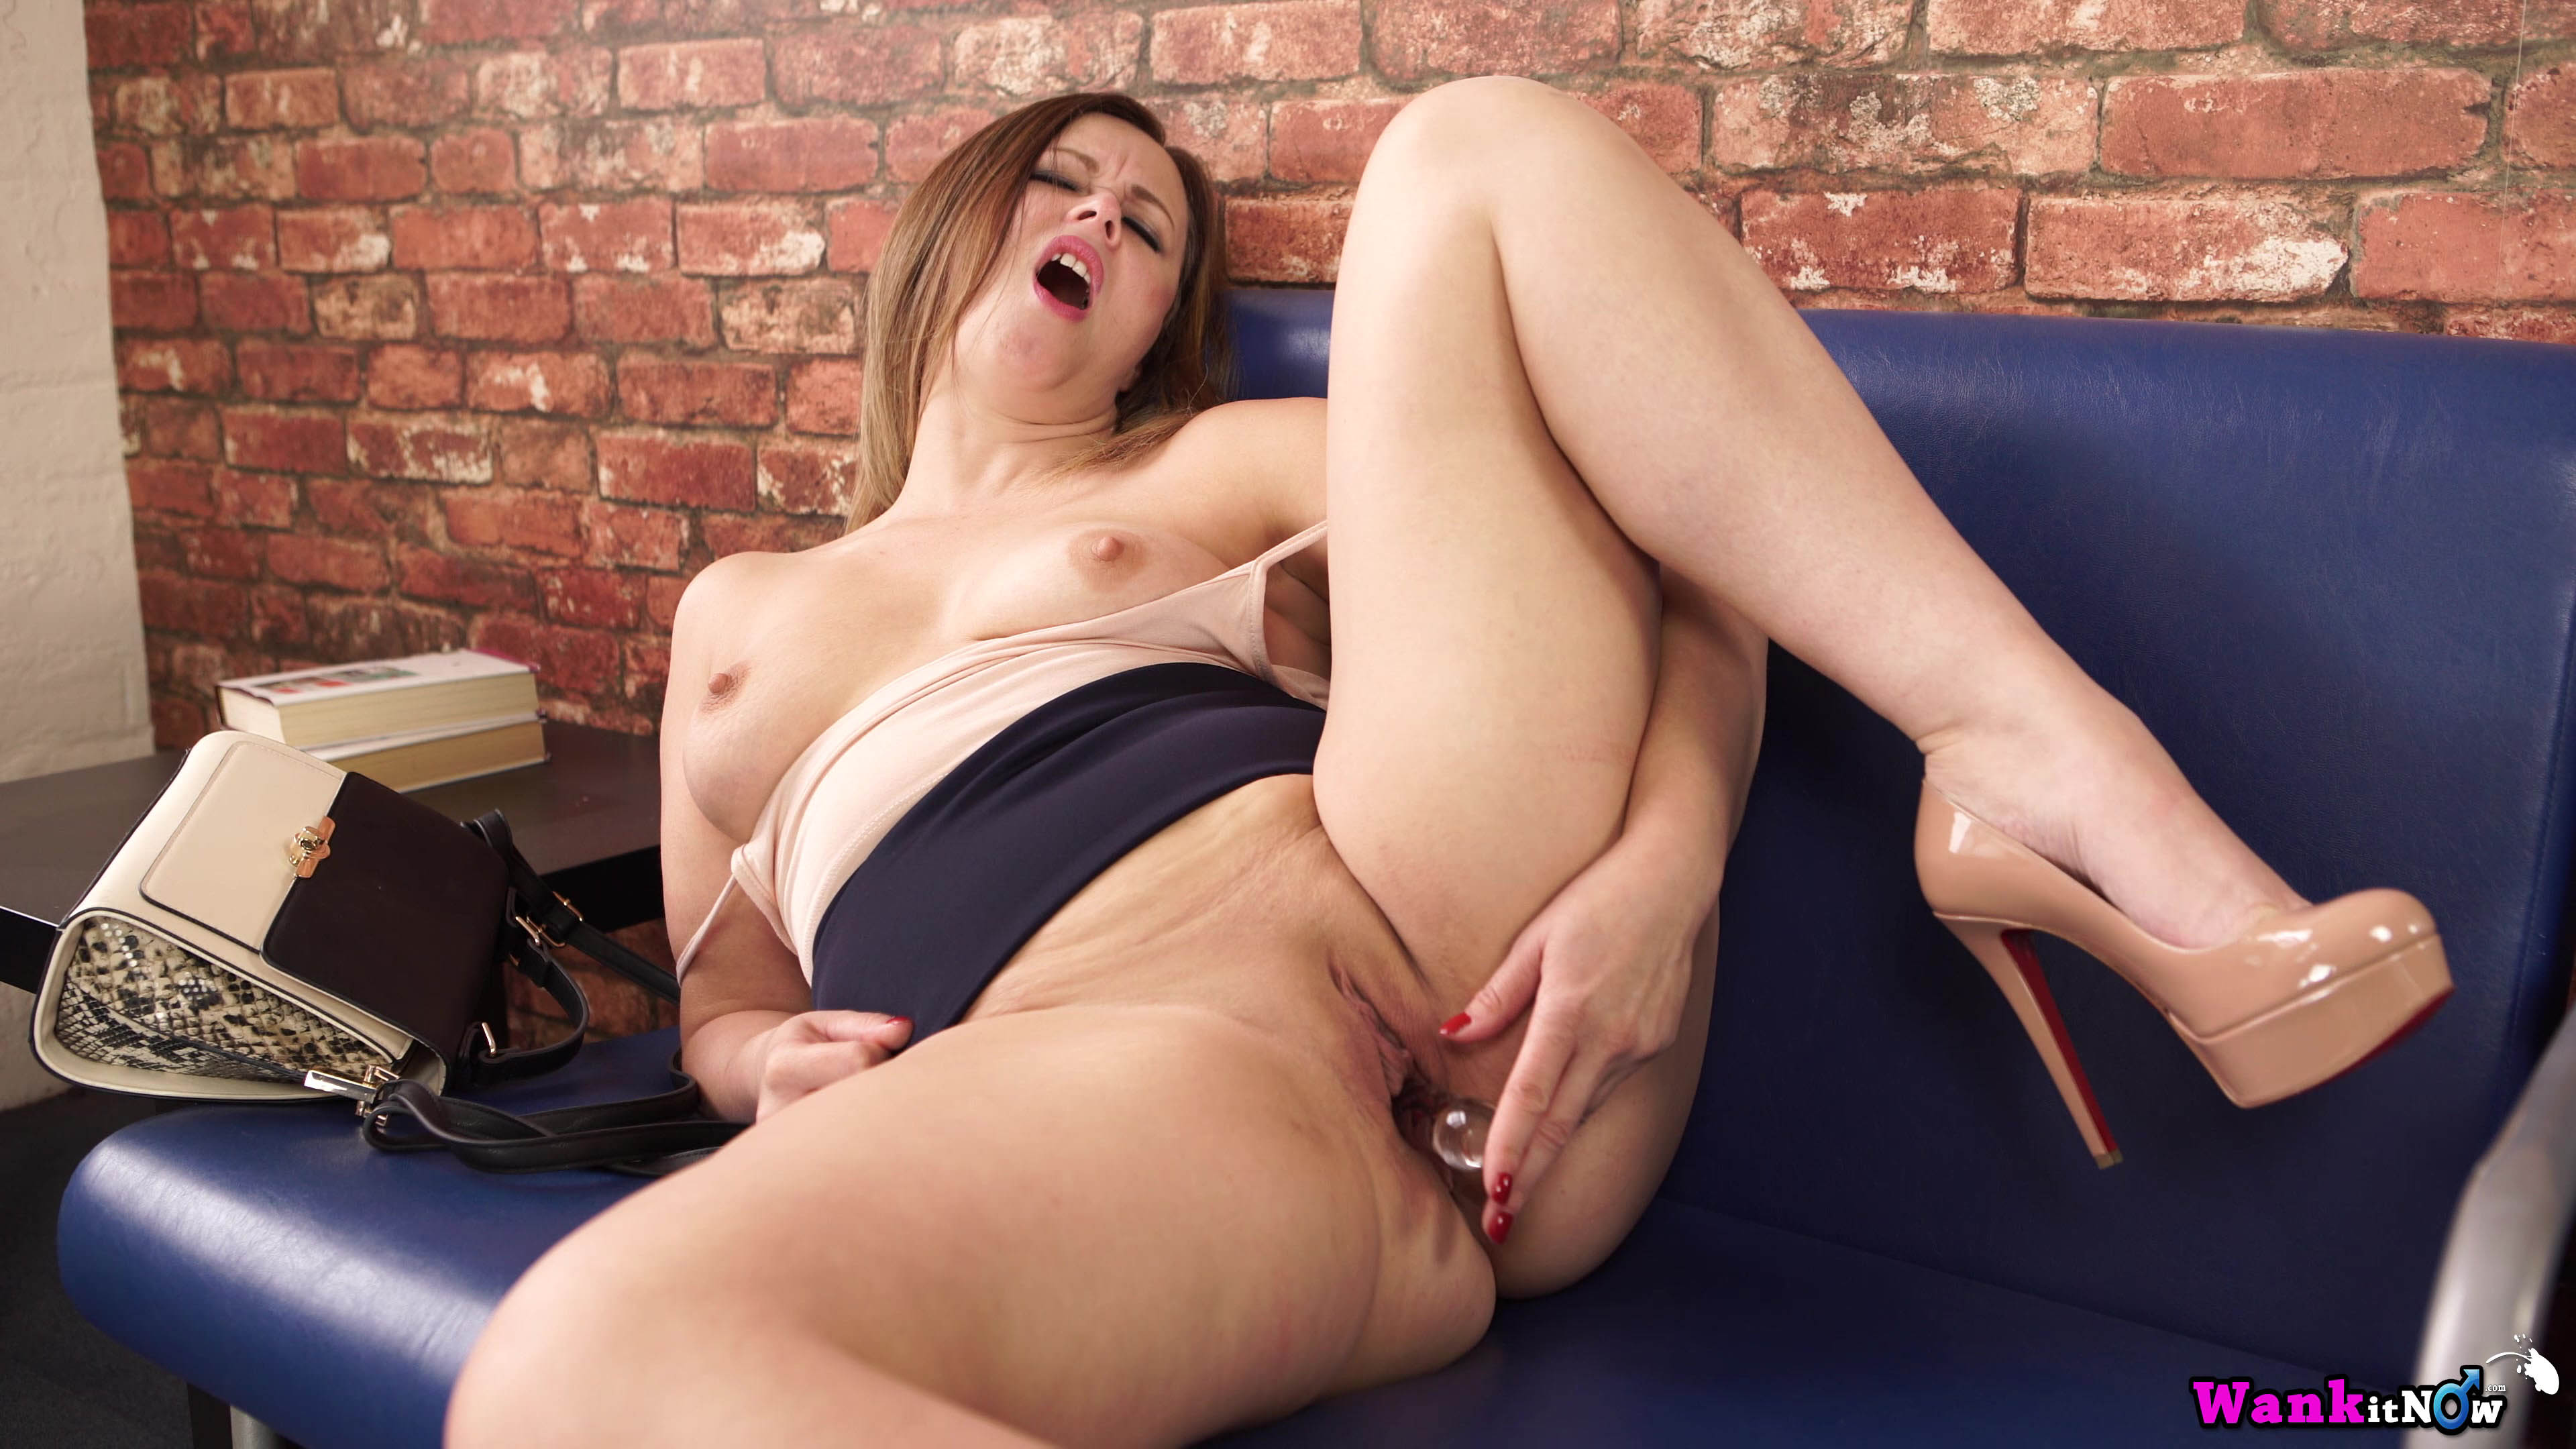 common wank with your mom on my couch #3